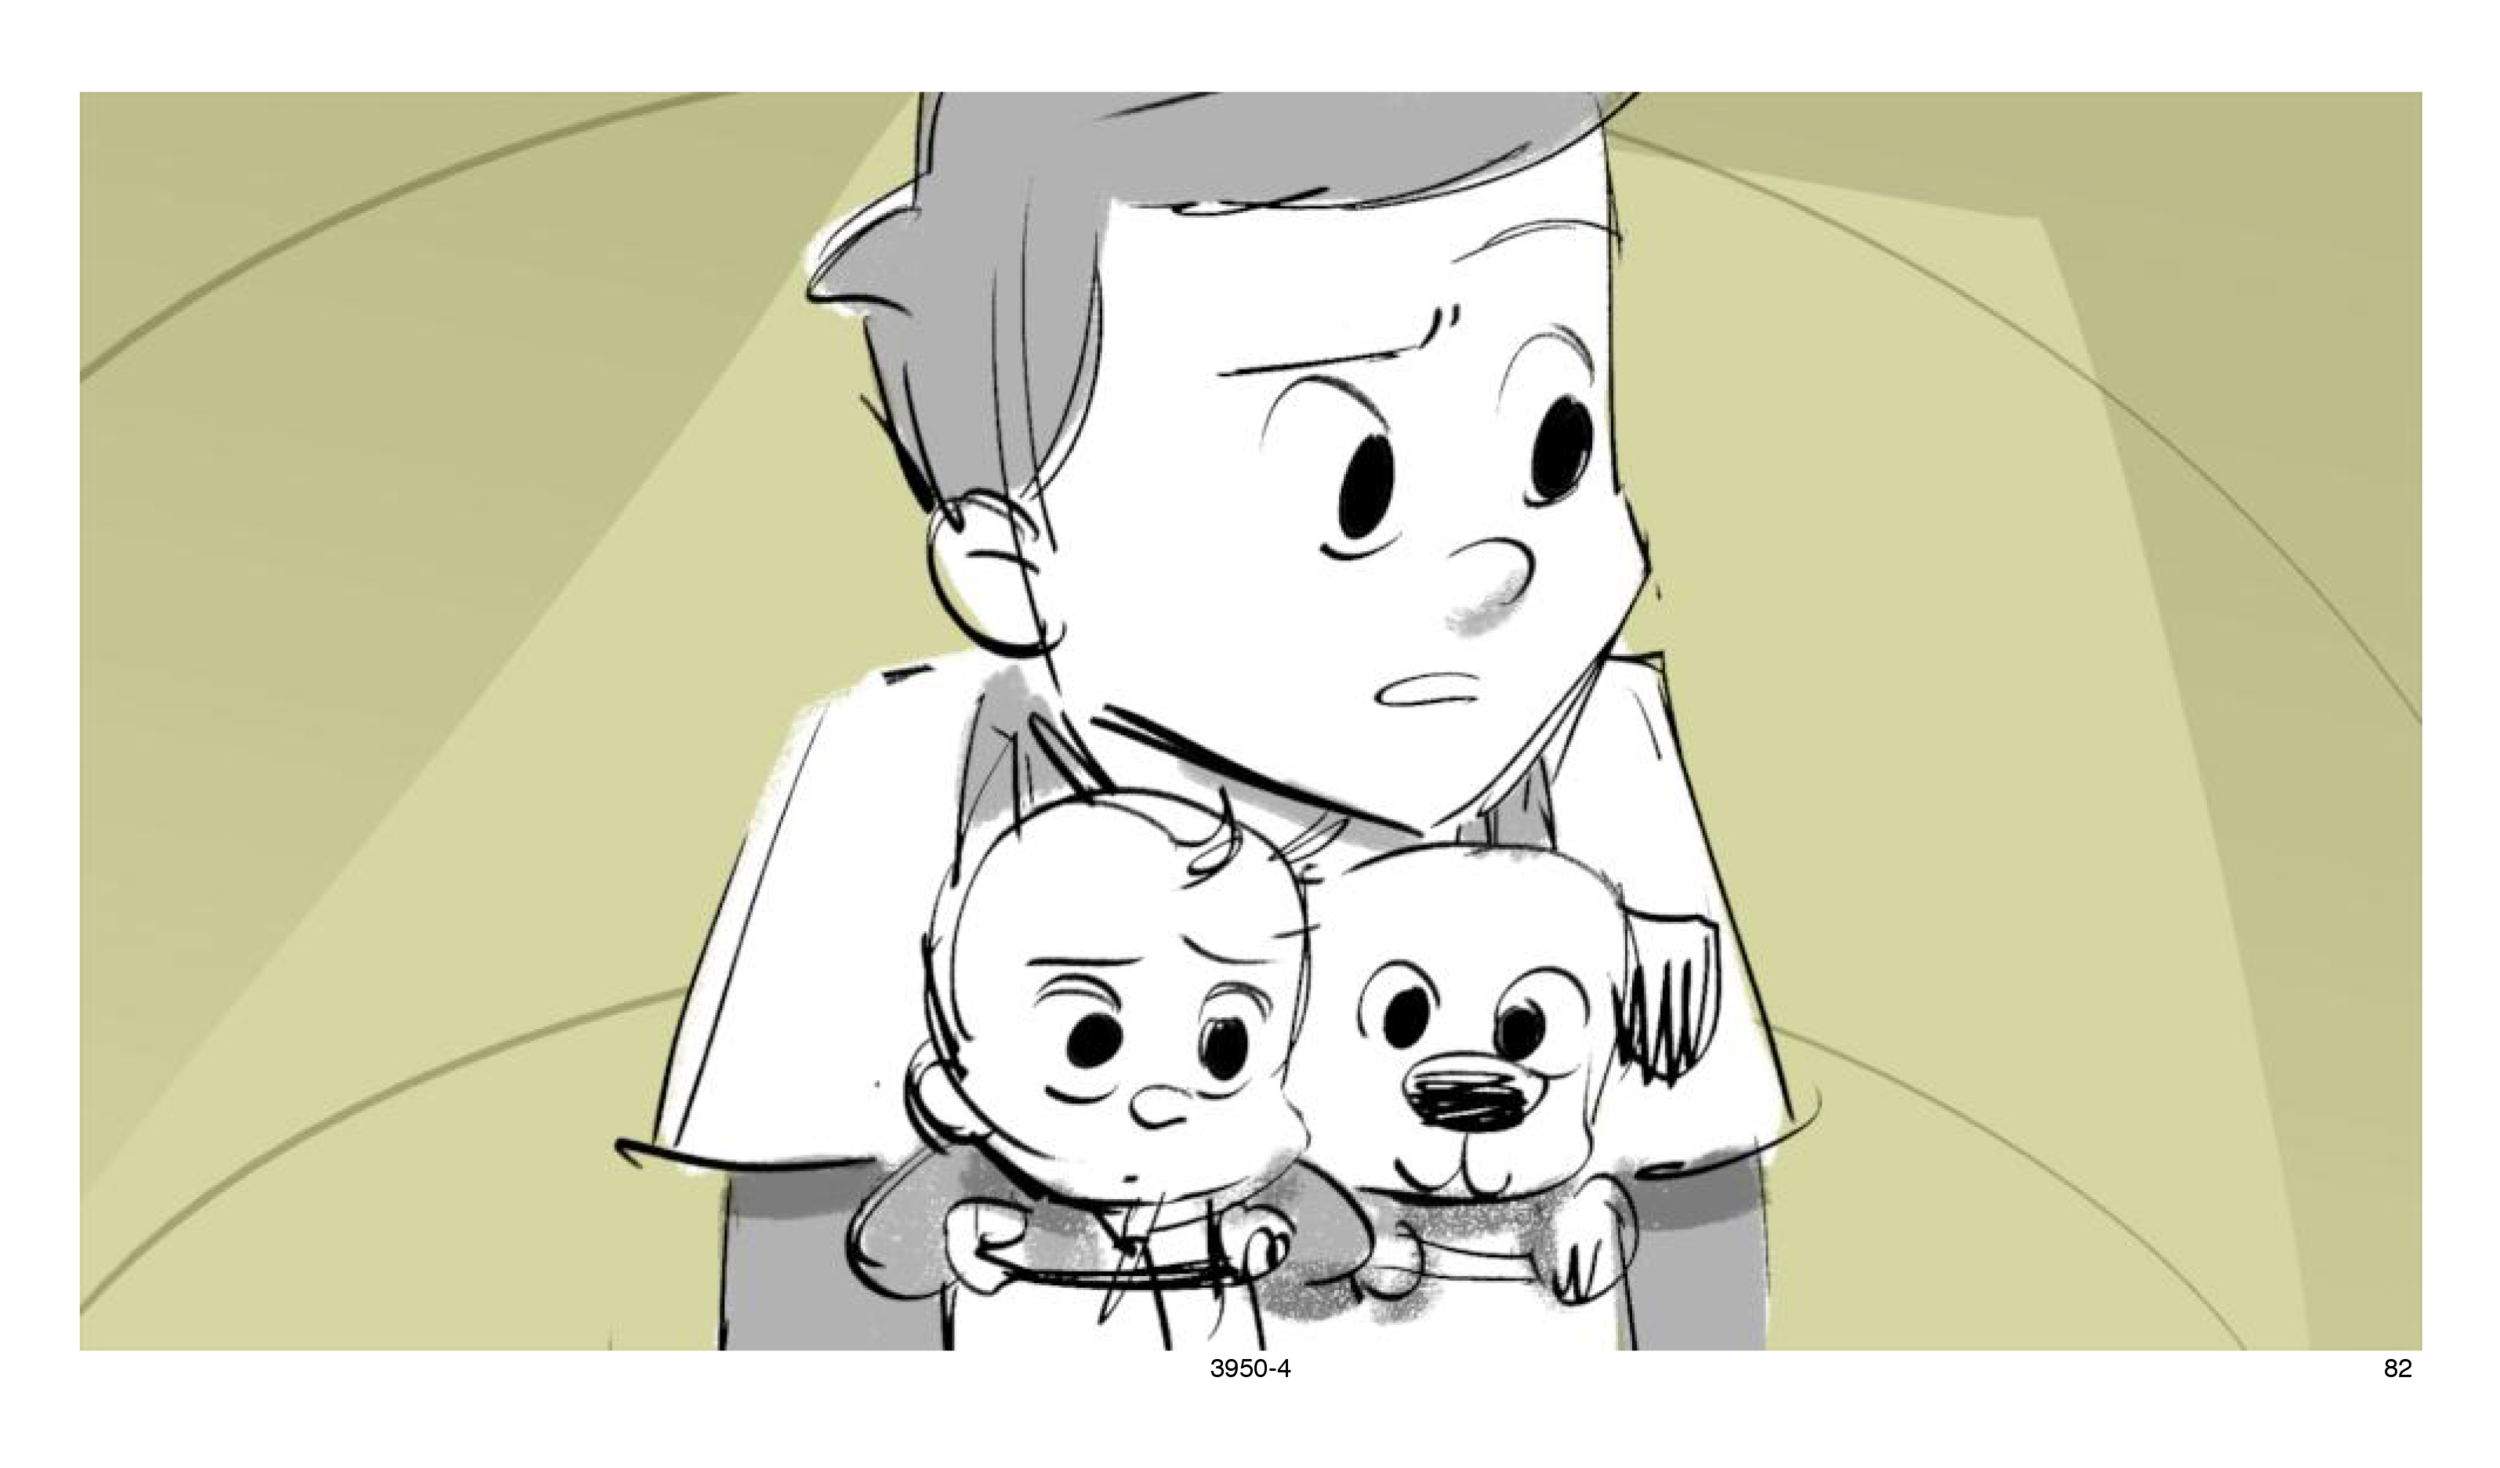 BossBaby_082.png